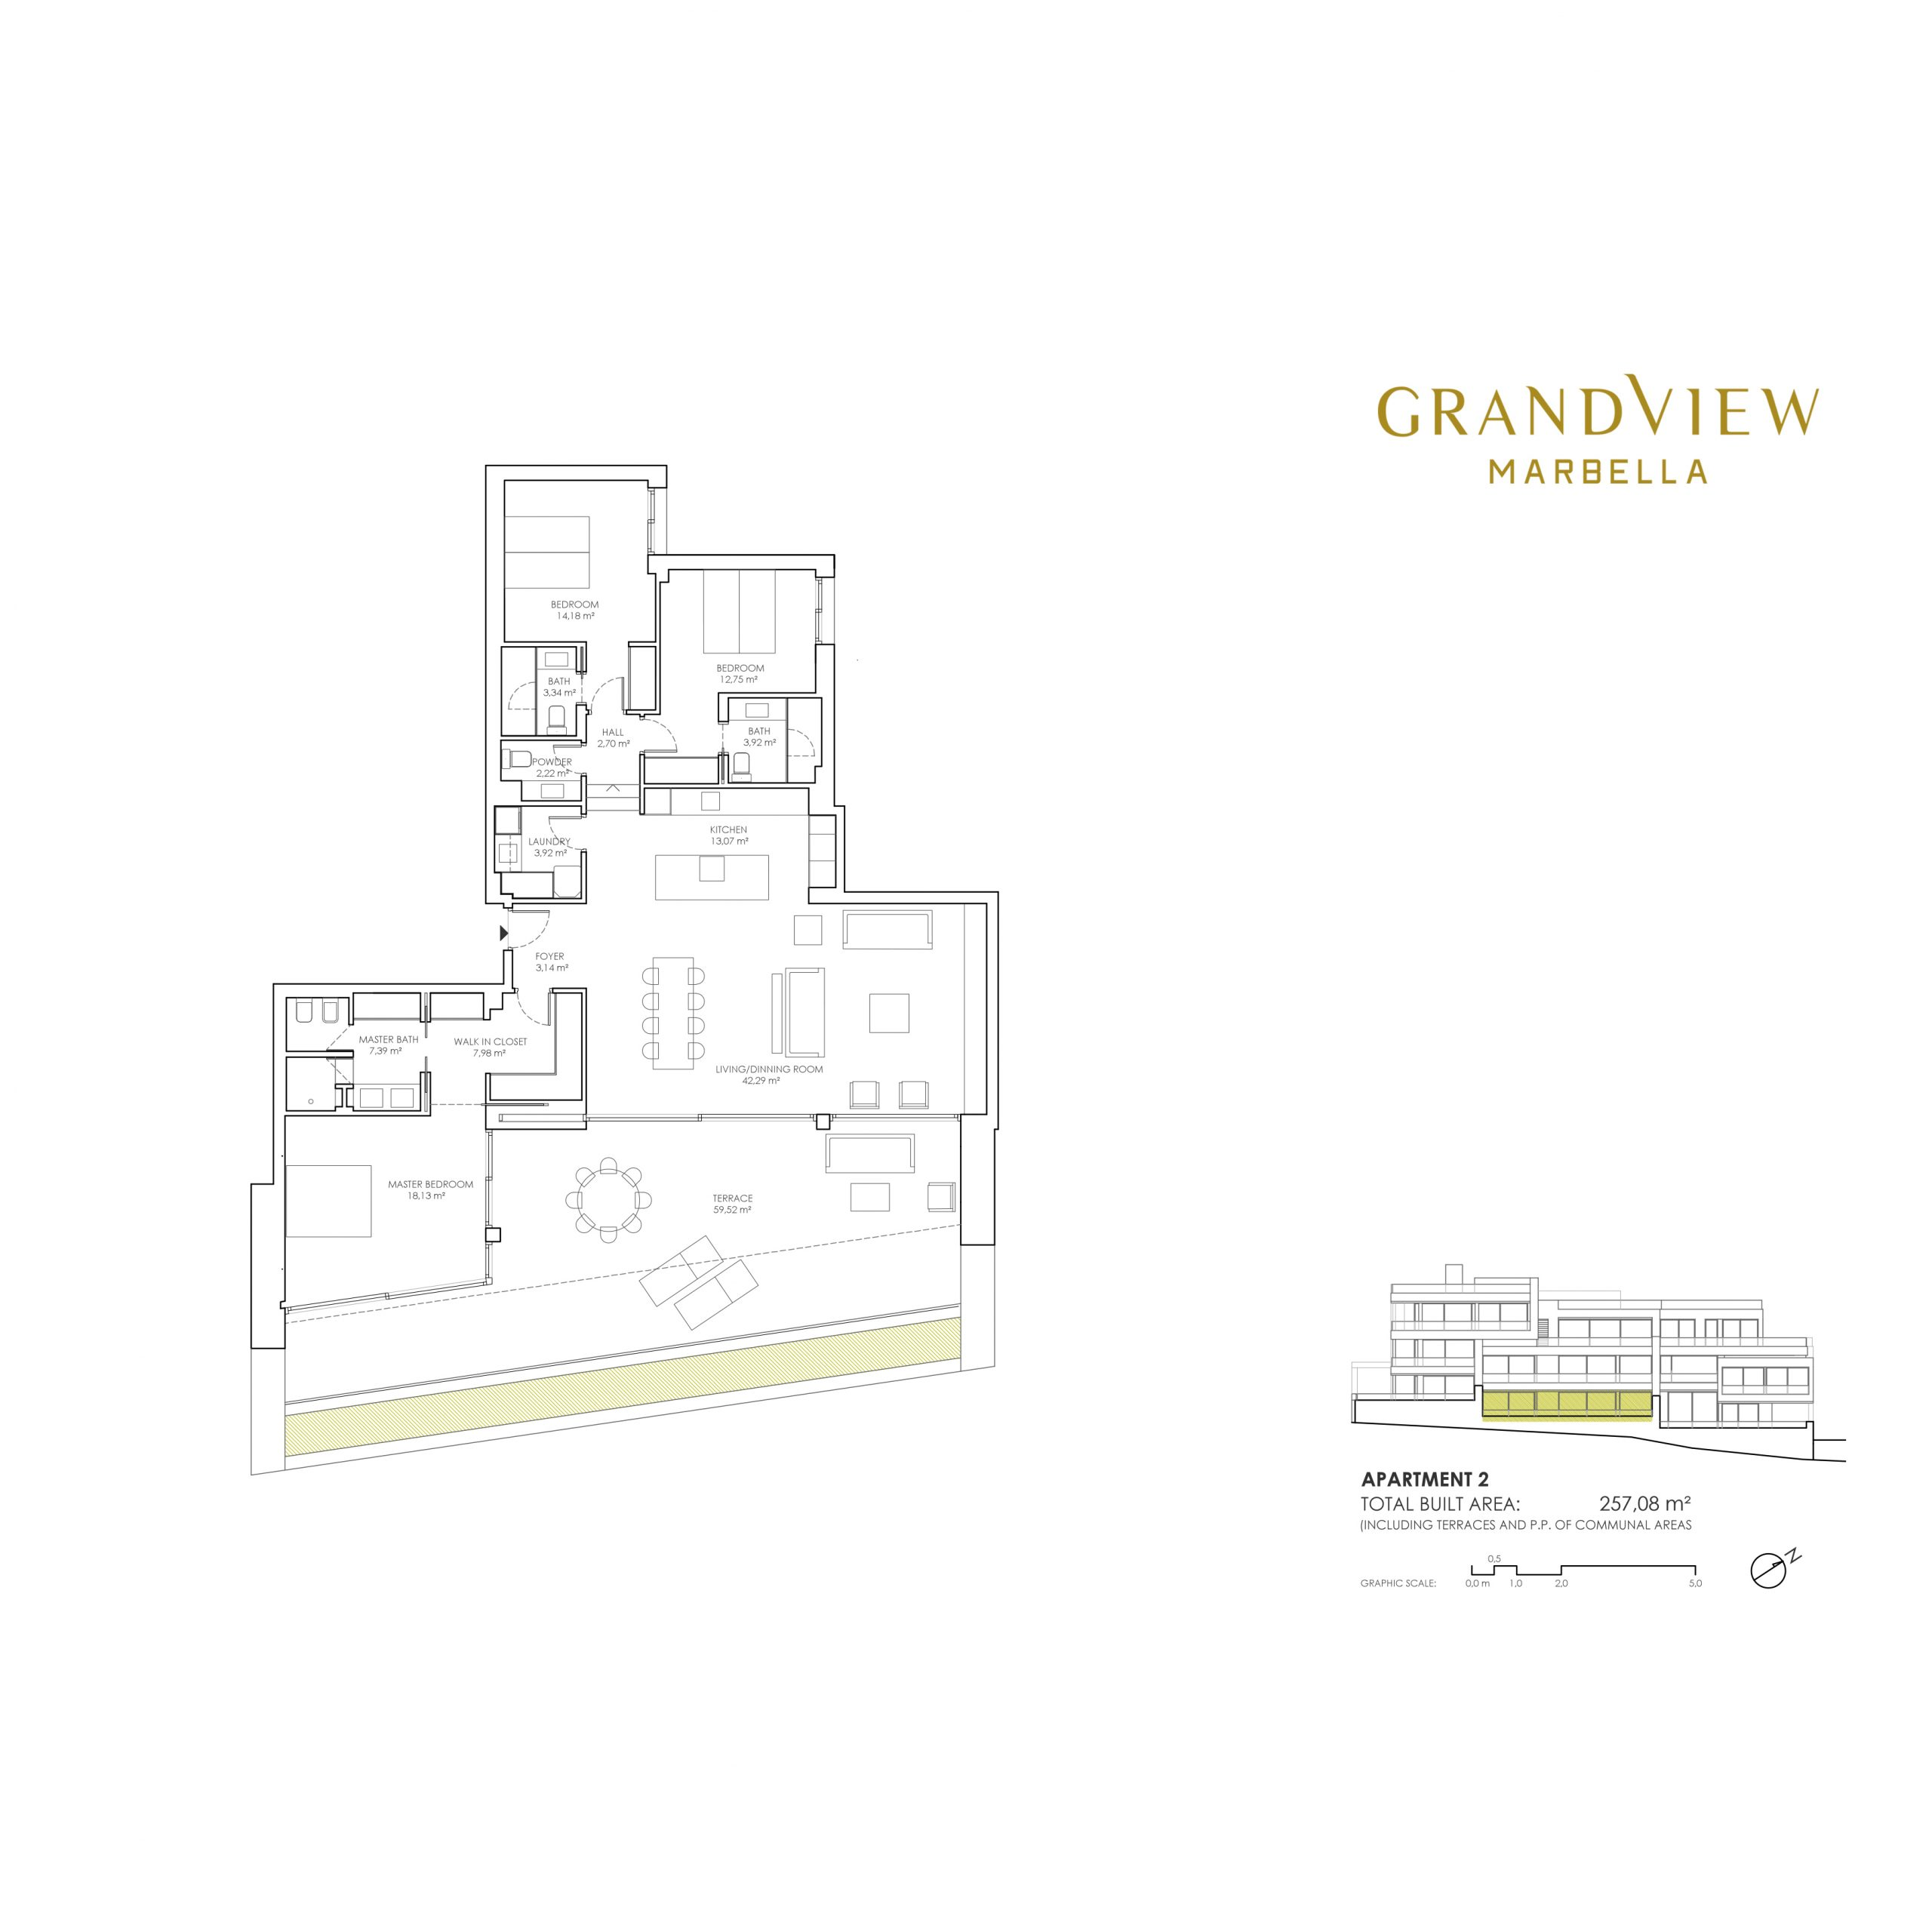 Grand View Marbella Apartment 2 floorplan